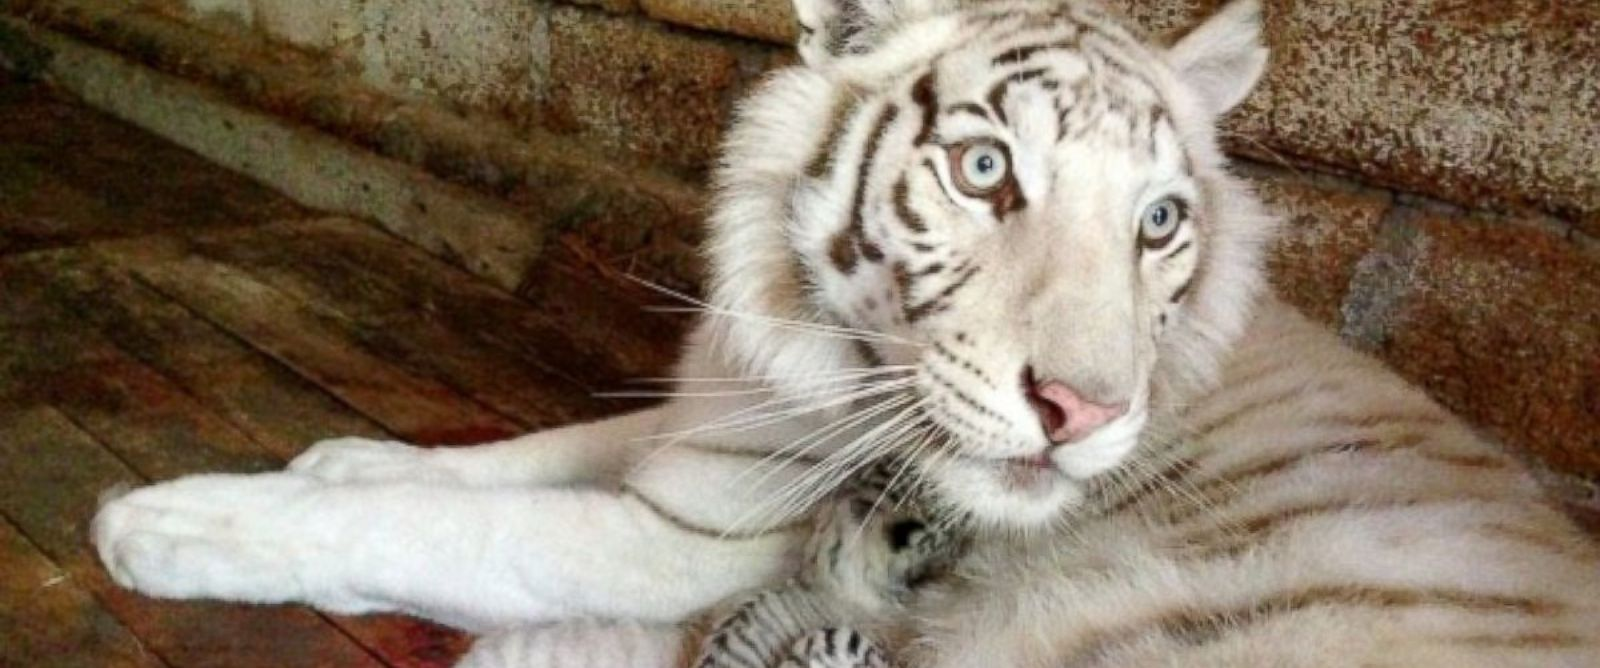 PHOTO: The Yalta Zoo in Crimea, Ukraine shared this image of their beloved white tiger, Tigryulia, and her cubs.